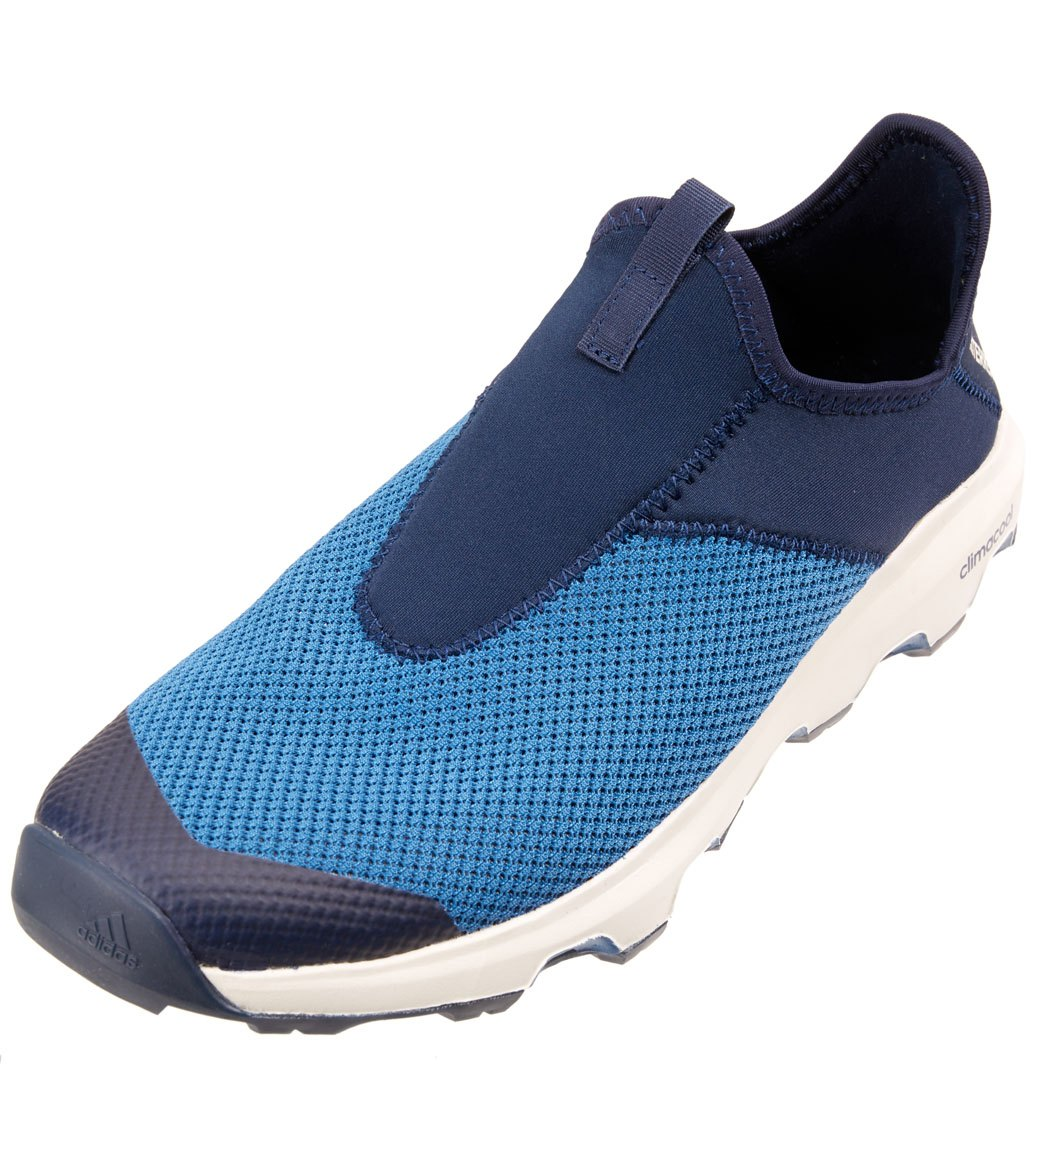 603ddafcce8a ... Adidas Men s Terrex Climacool Voyager Slip On Water Shoe. Share